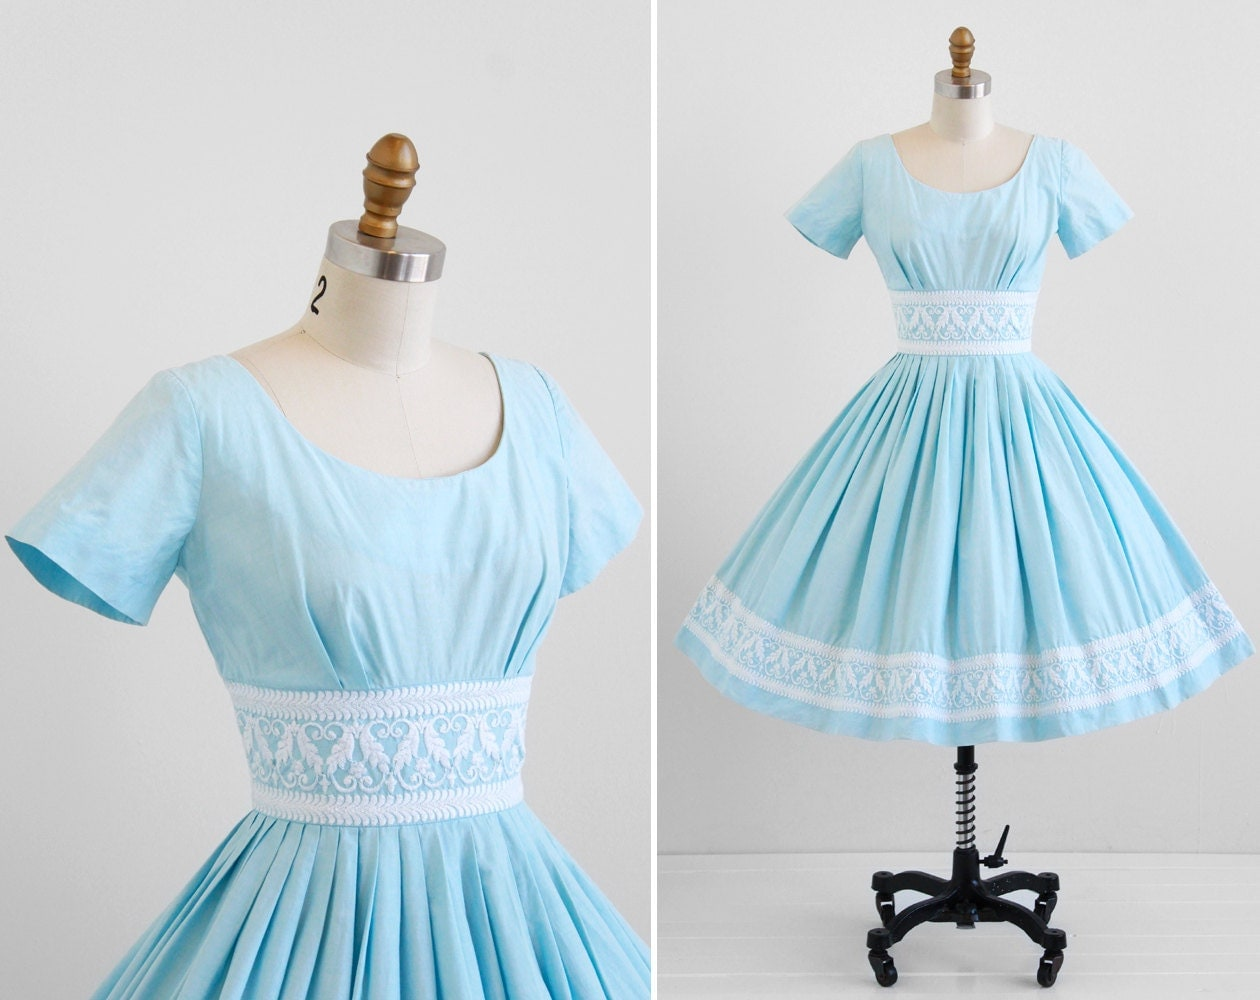 Vintage 1950s Dress / 50s Dress / Sky Blue Cotton Dress With